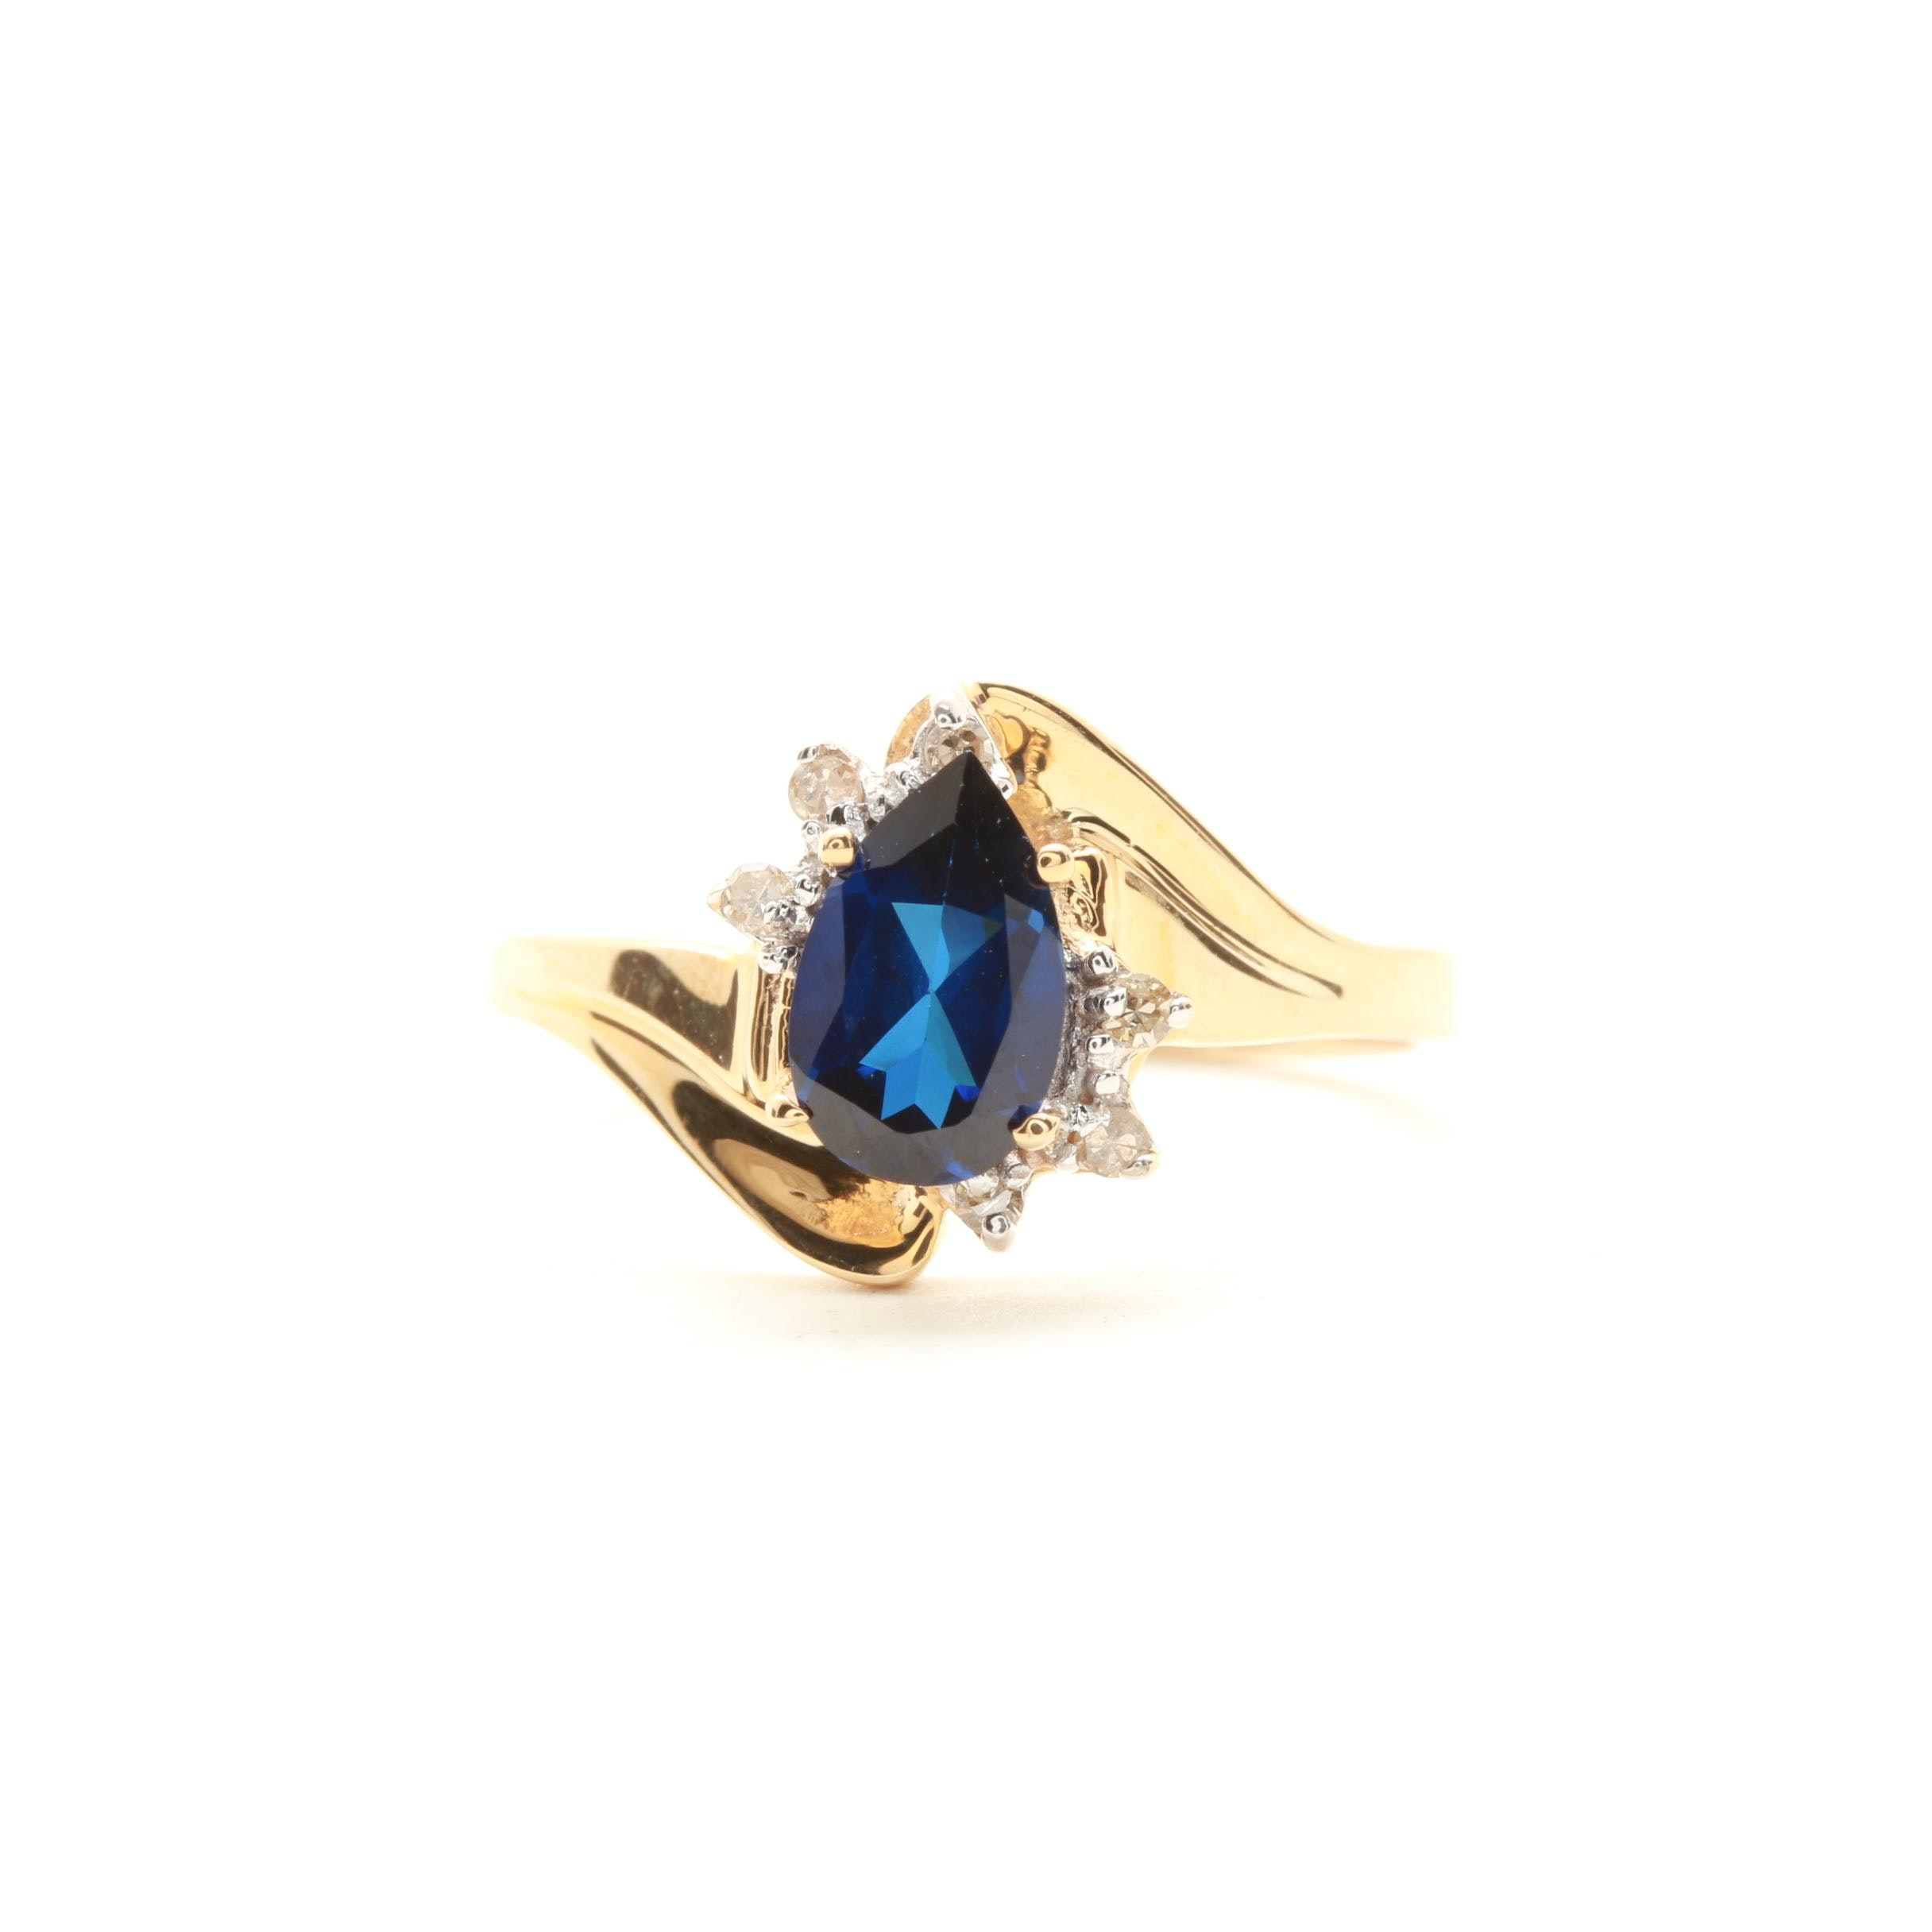 10K Yellow Gold Synthetic Sapphire and Diamond Ring